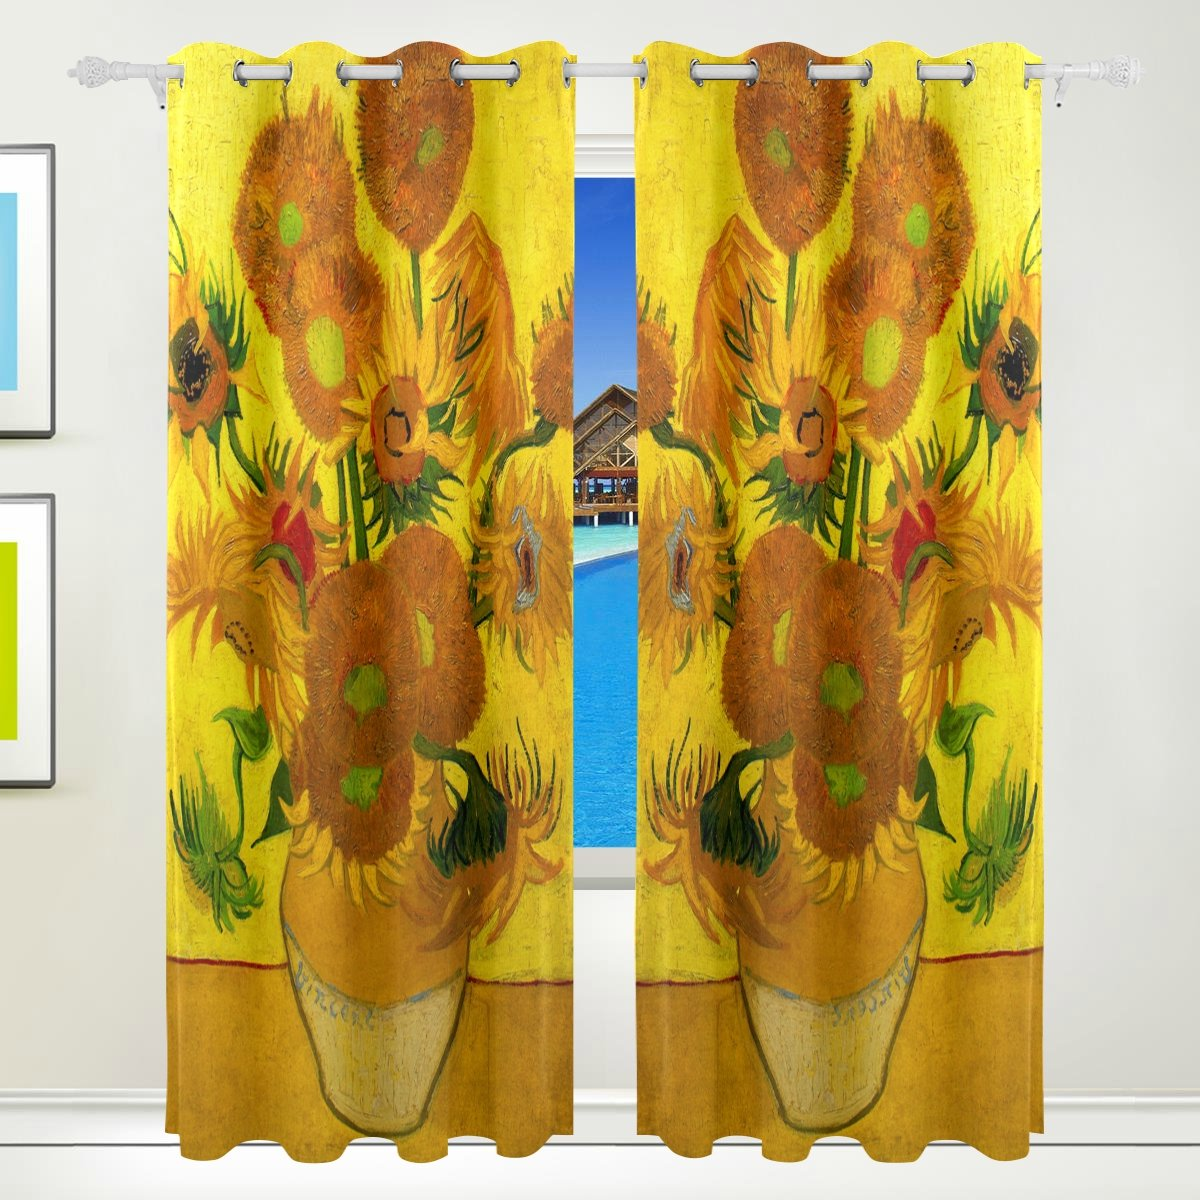 CUMIMI Van Gogh Oil Painting Sunflower Thermal Insulated Blackout Room Darkening Window Curtains for Bedroom Living Room 55 W x 84 L,2 Panels